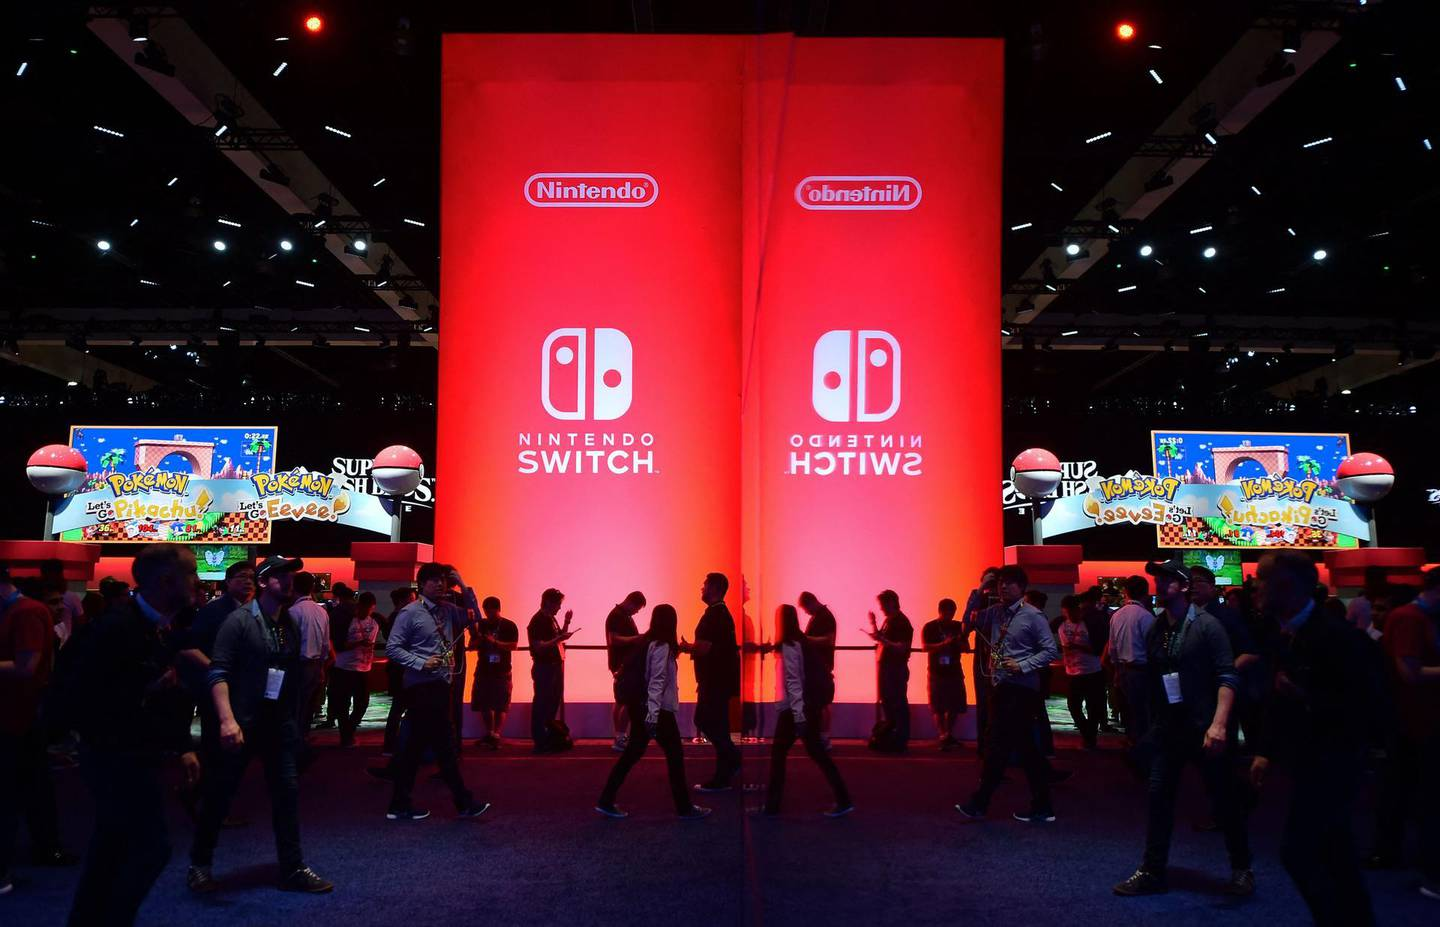 (FILES) In this file photo taken on June 12, 2018, people wait line to sample Nintendo Switch games at the 24th Electronic Expo, or E3 2018, in Los Angeles. Nintendo on June 15, 2021, unveiled updated versions of its hit console games including Zelda and Super Smash Brothers, but disappointed fans looking for a new model of its popular Switch console. / AFP / Frederic J. BROWN